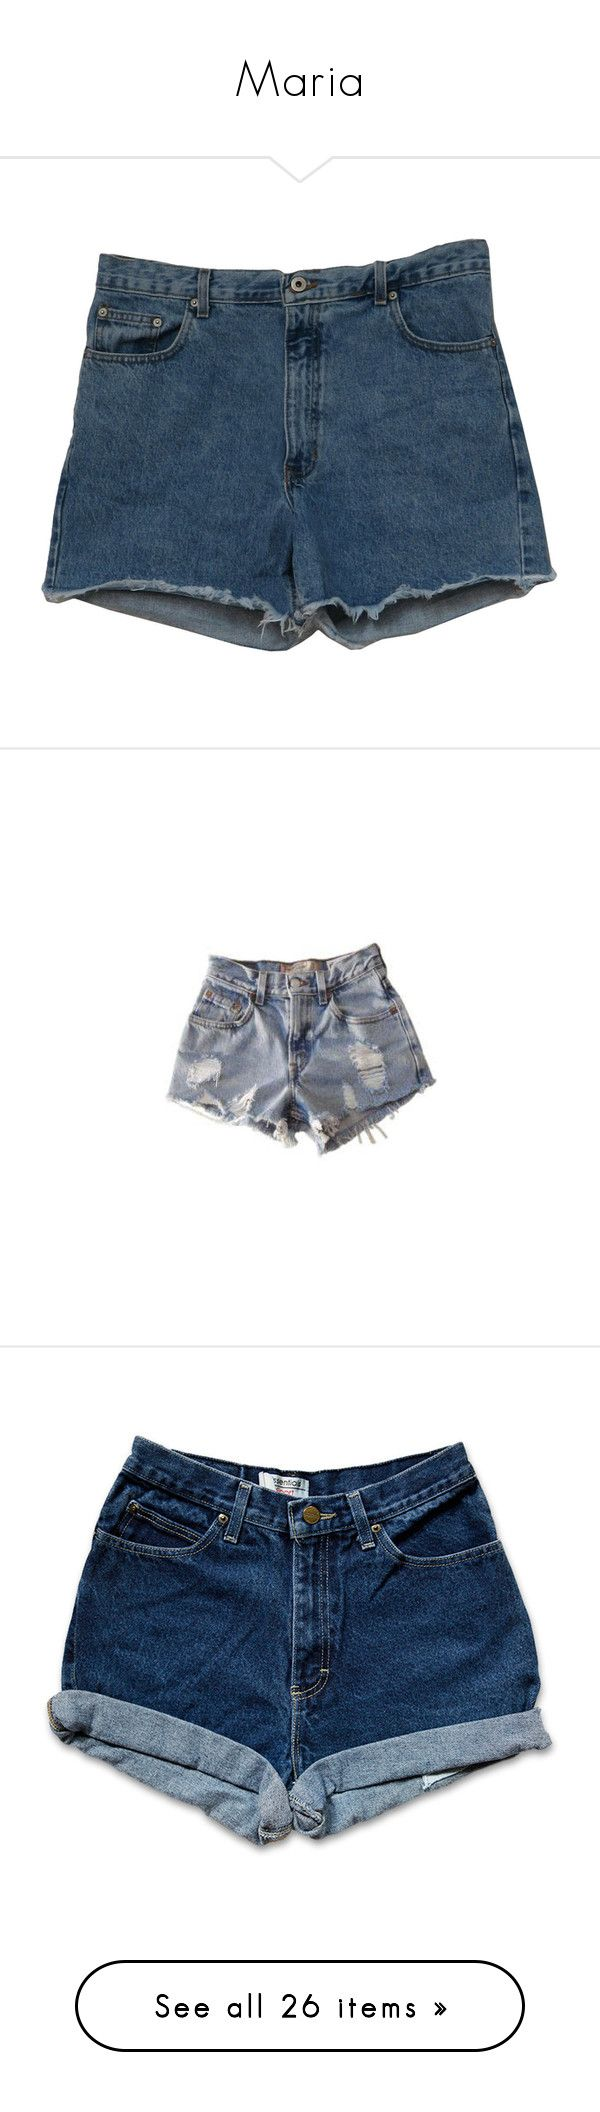 """Maria"" by the-iconic-nika ❤ liked on Polyvore featuring shorts, bottoms, pants, short, cut off short shorts, light blue shorts, gold shorts, hot cut off shorts, hot shorts and jeans"